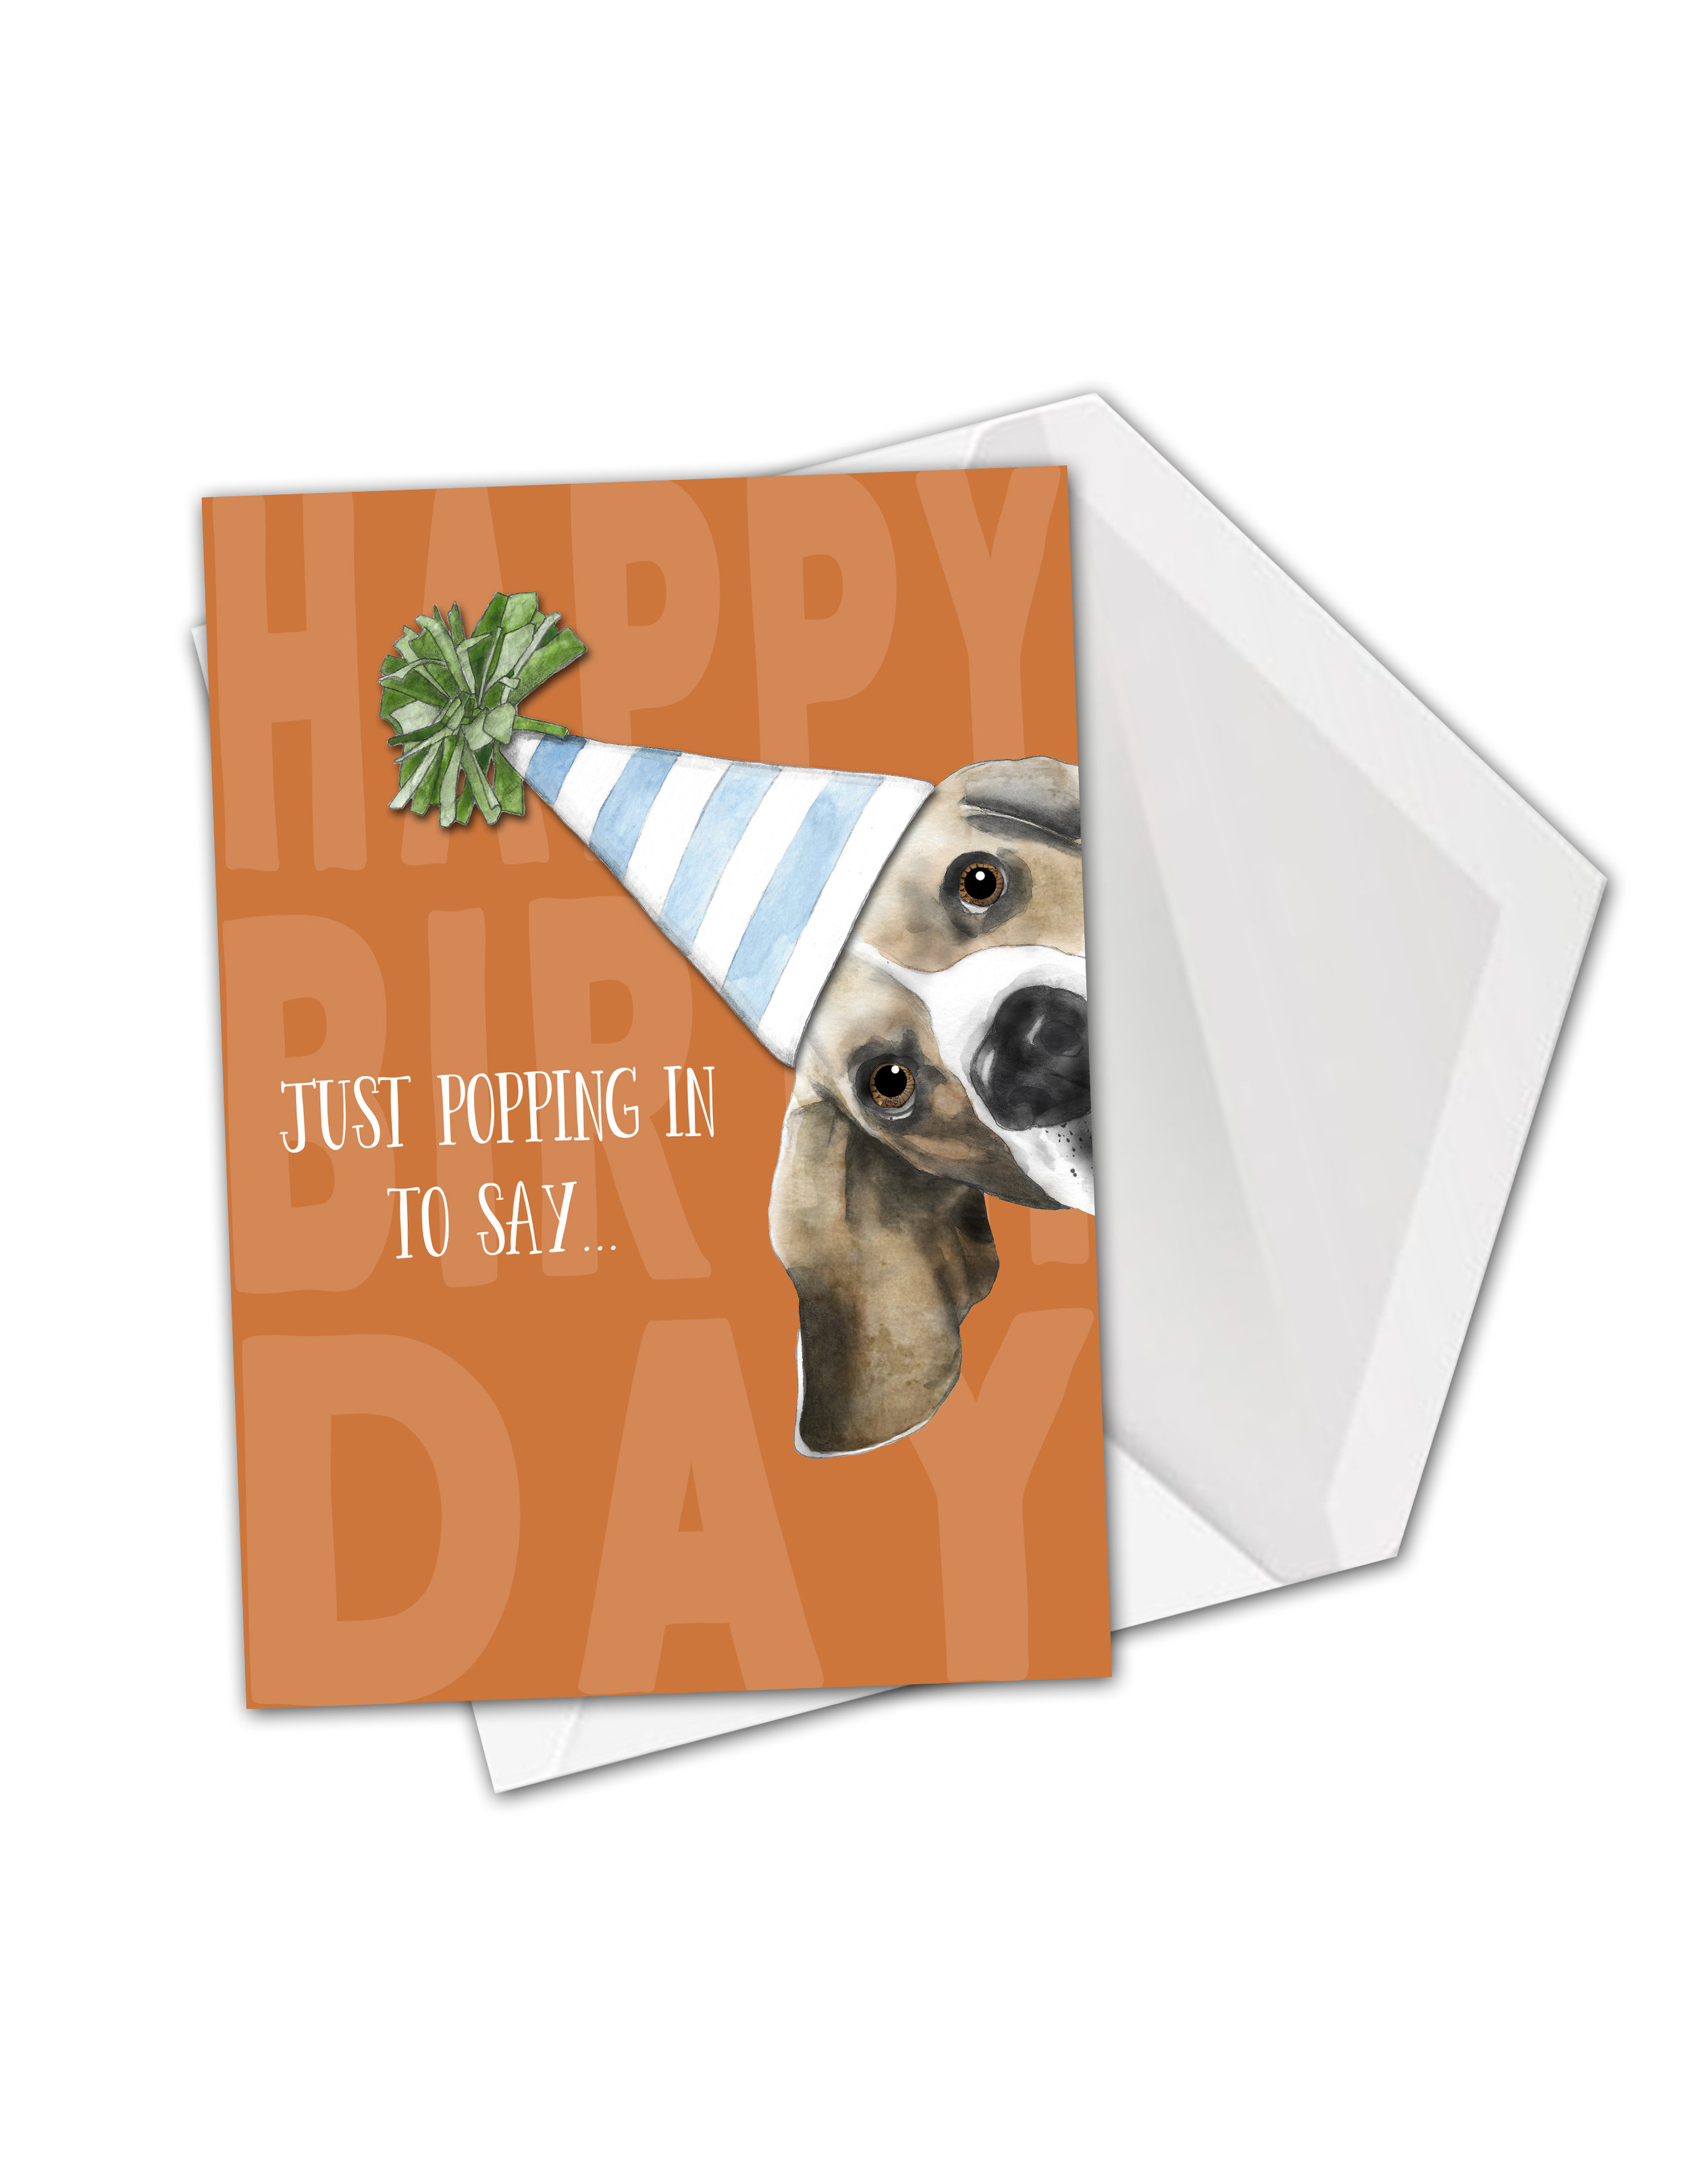 CA Popping in dog bday card mock.jpg